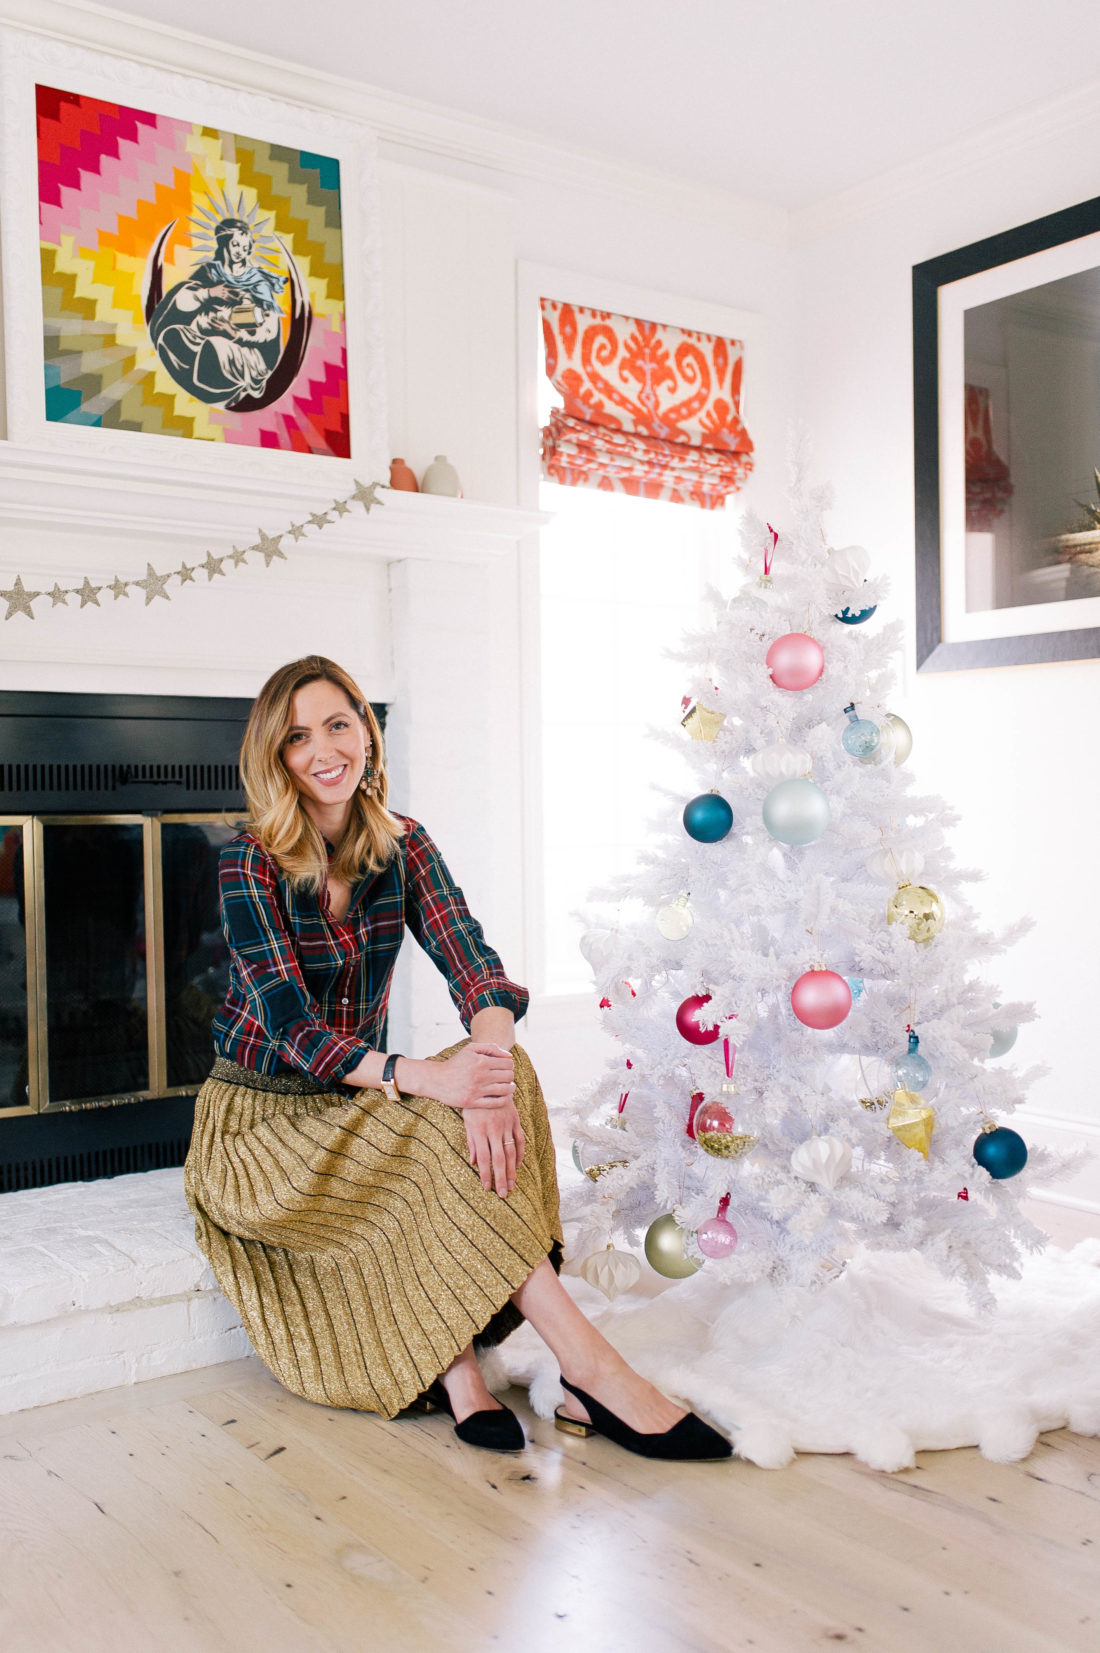 Decorating My Home For Christmas - Happily Eva After